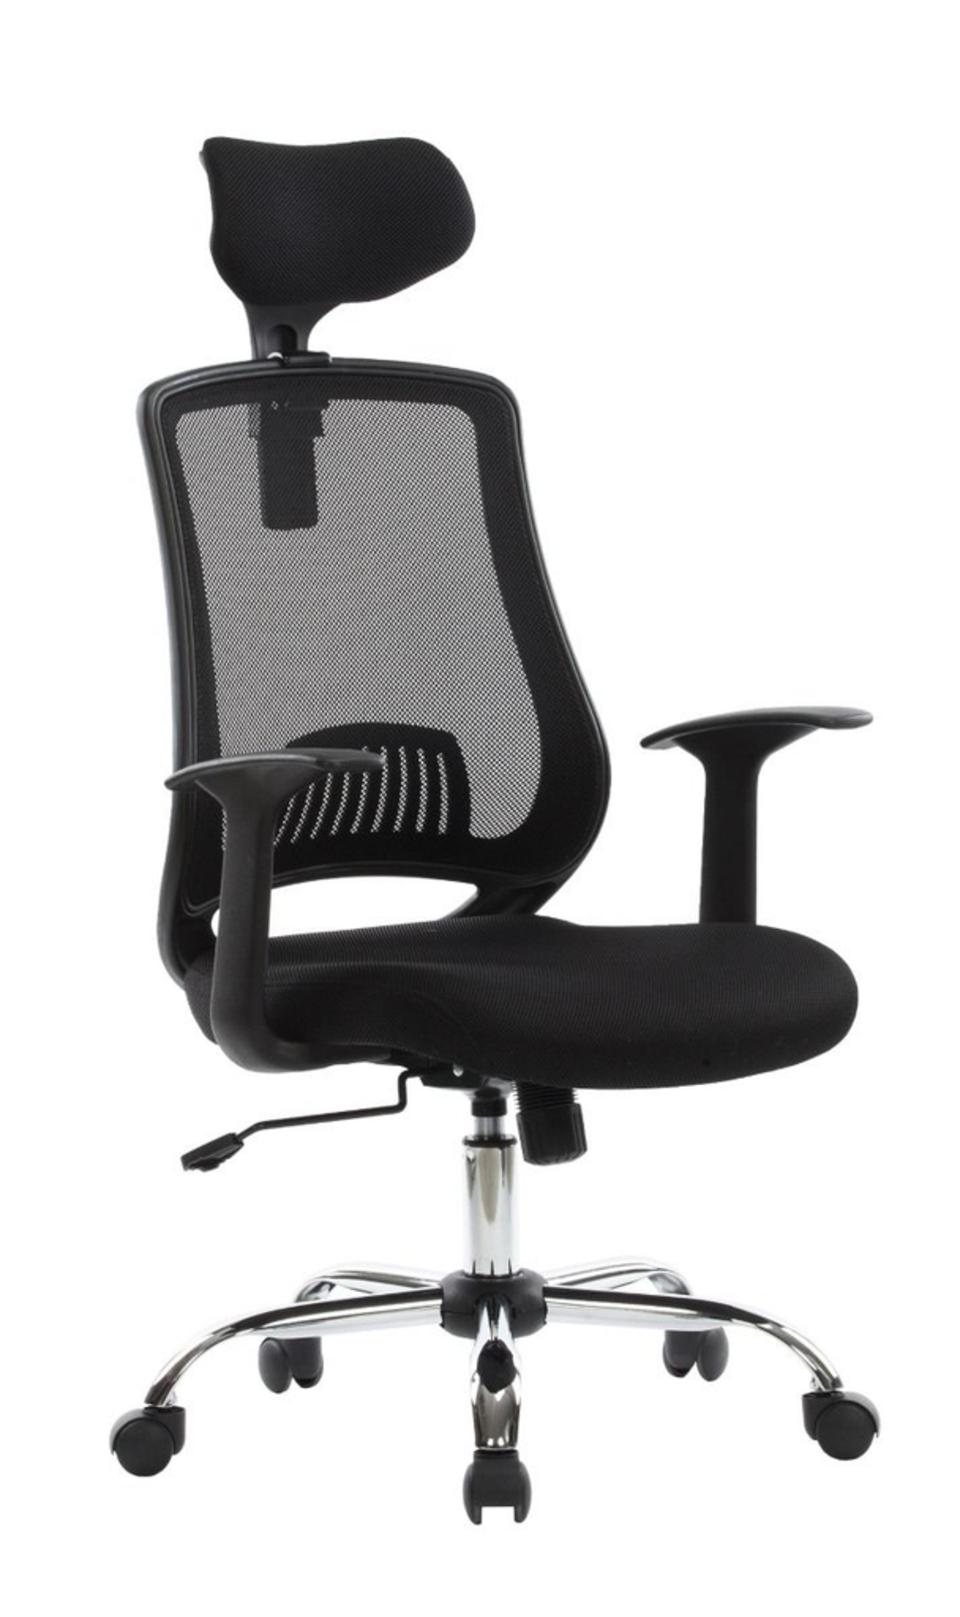 Bayside High Backed Mesh Executive Chair